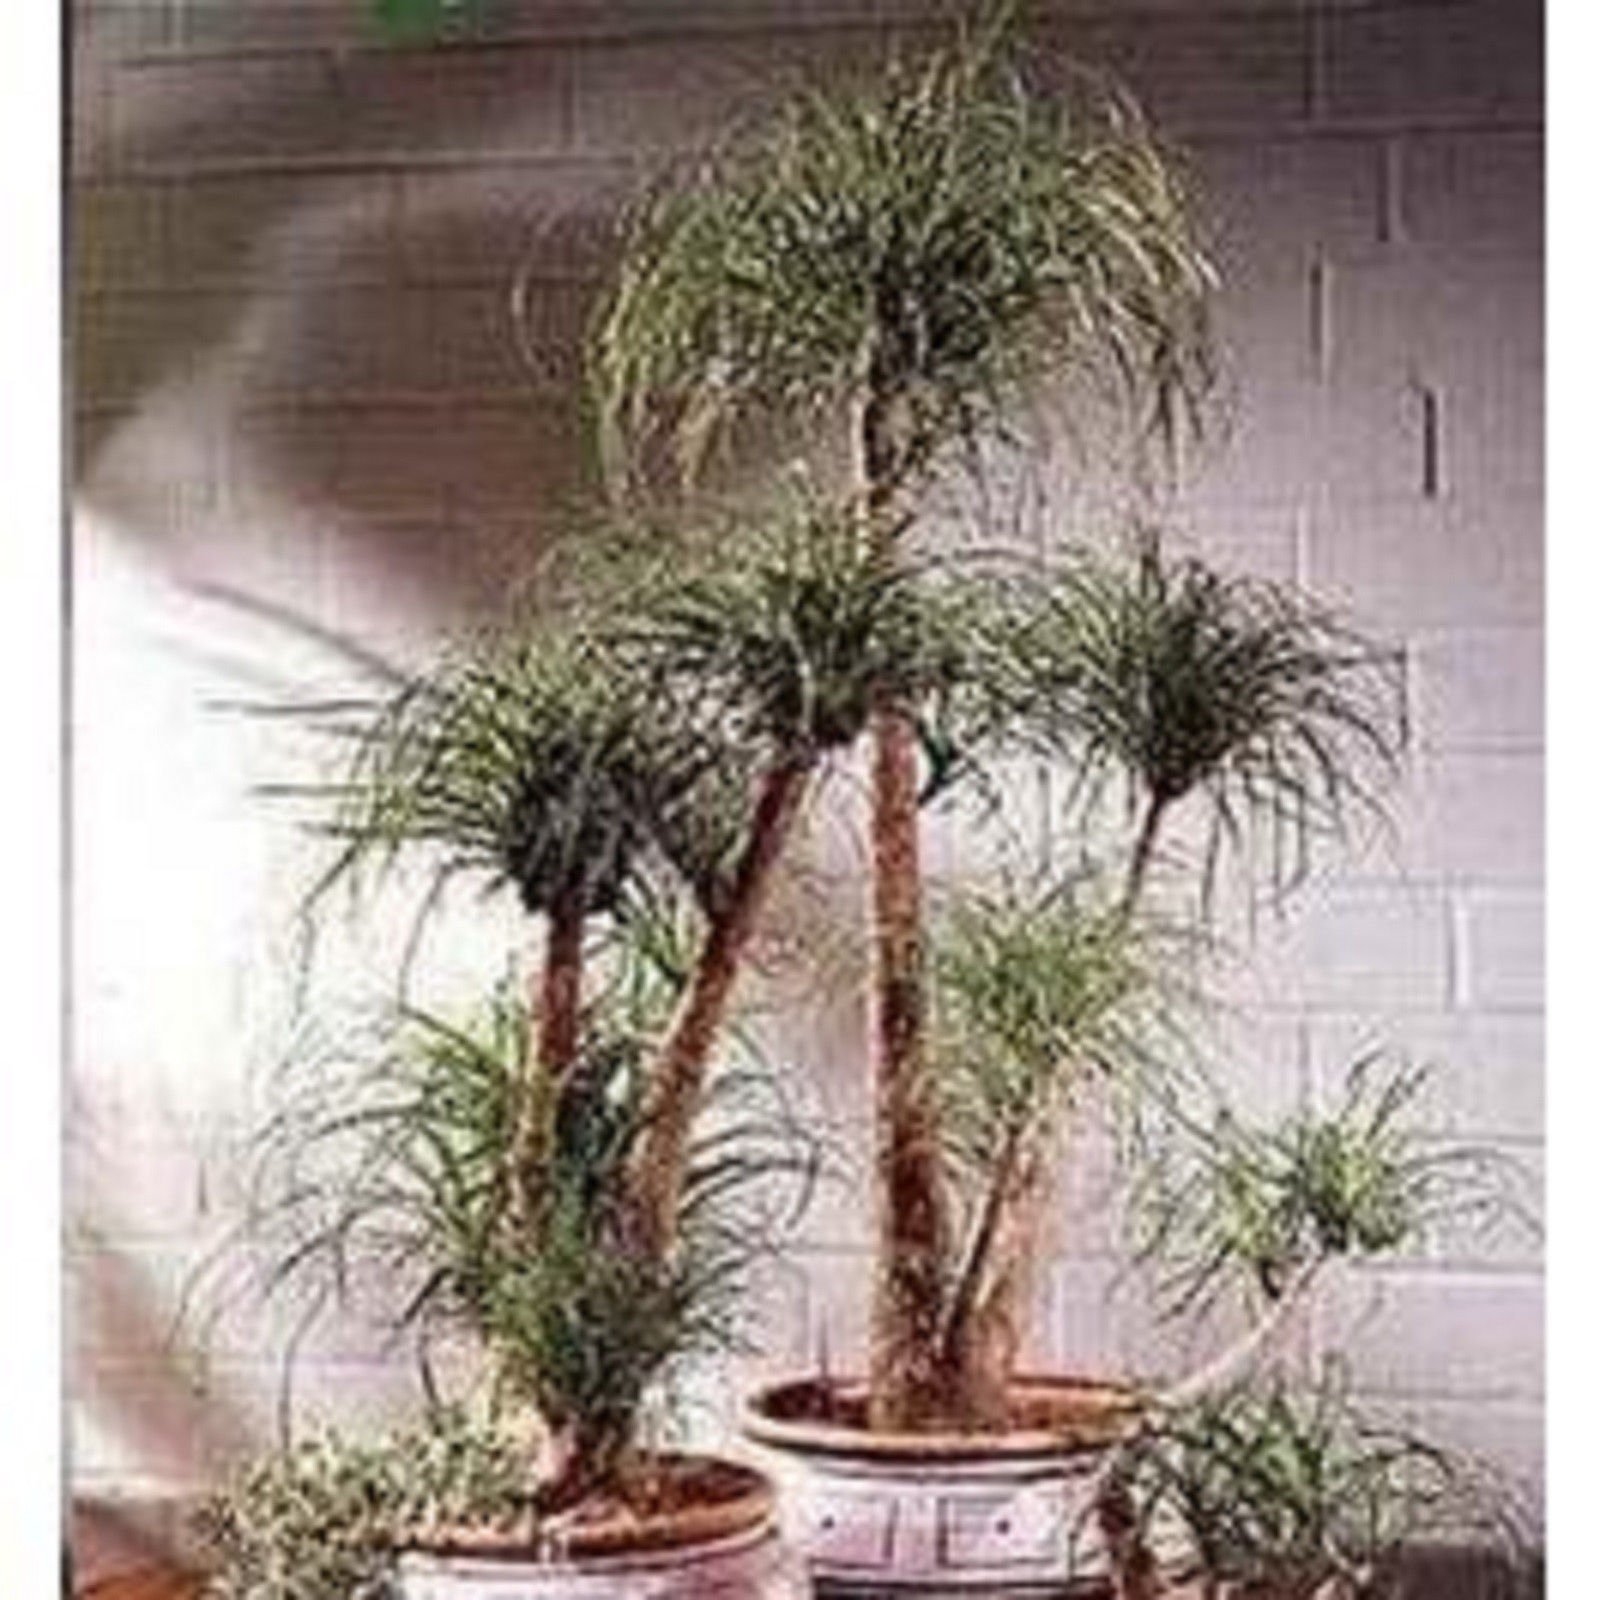 Guatemalan Ponytail Palm Tree 15 Seeds Beaucarnea Guatemalensis Delightful Plant